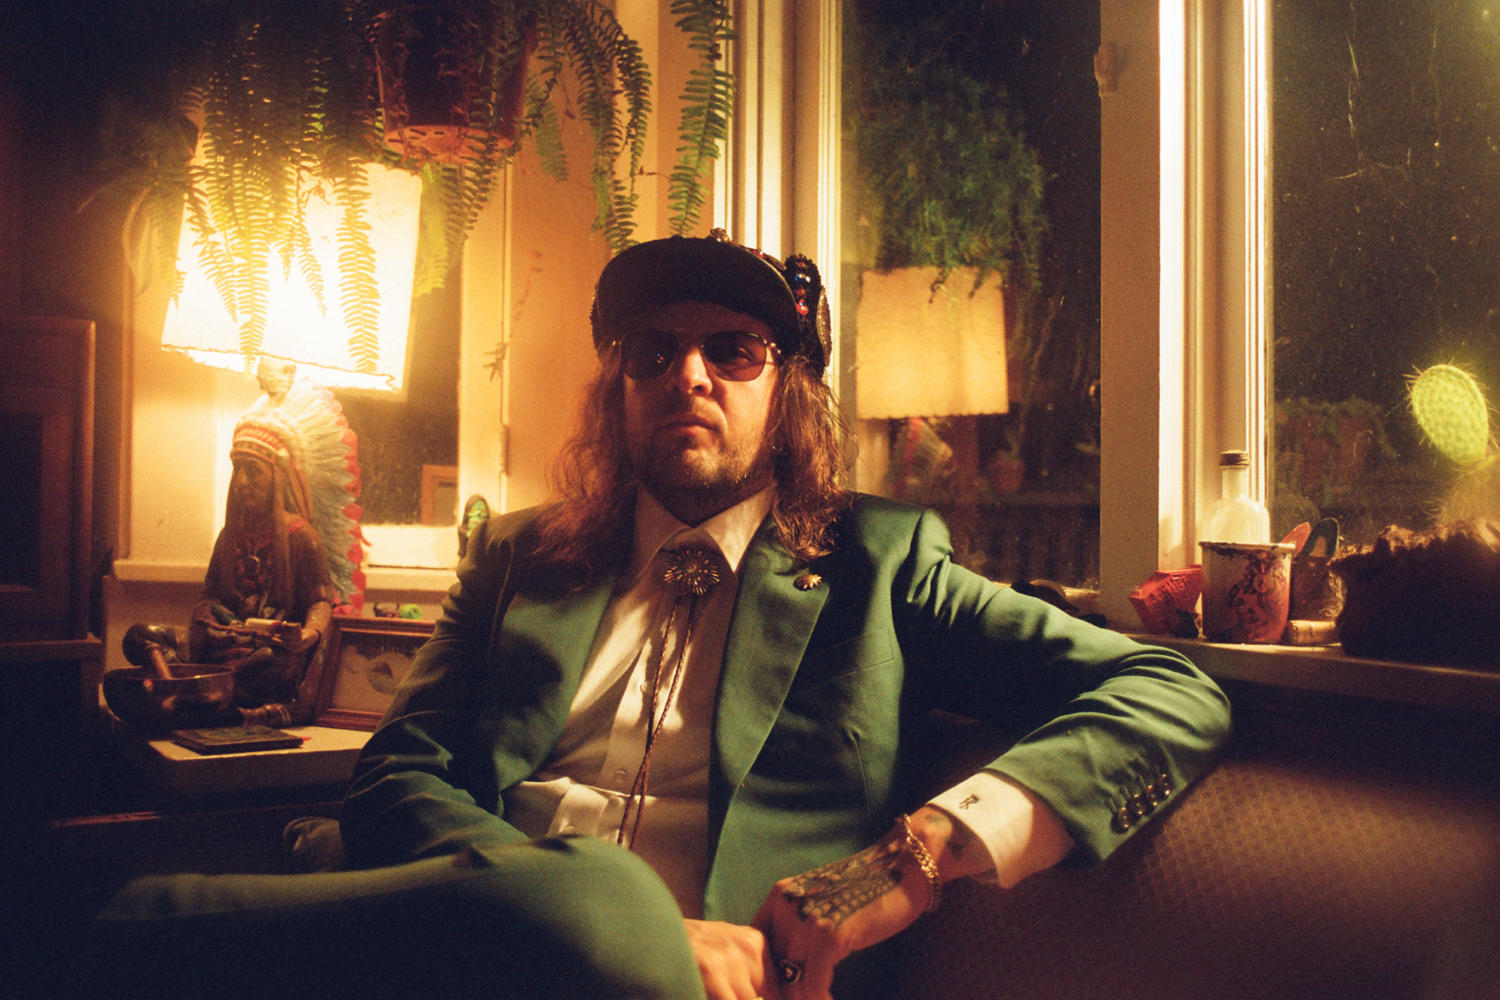 King Tuff shares 'Raindrop Blue' from new album 'The Other'